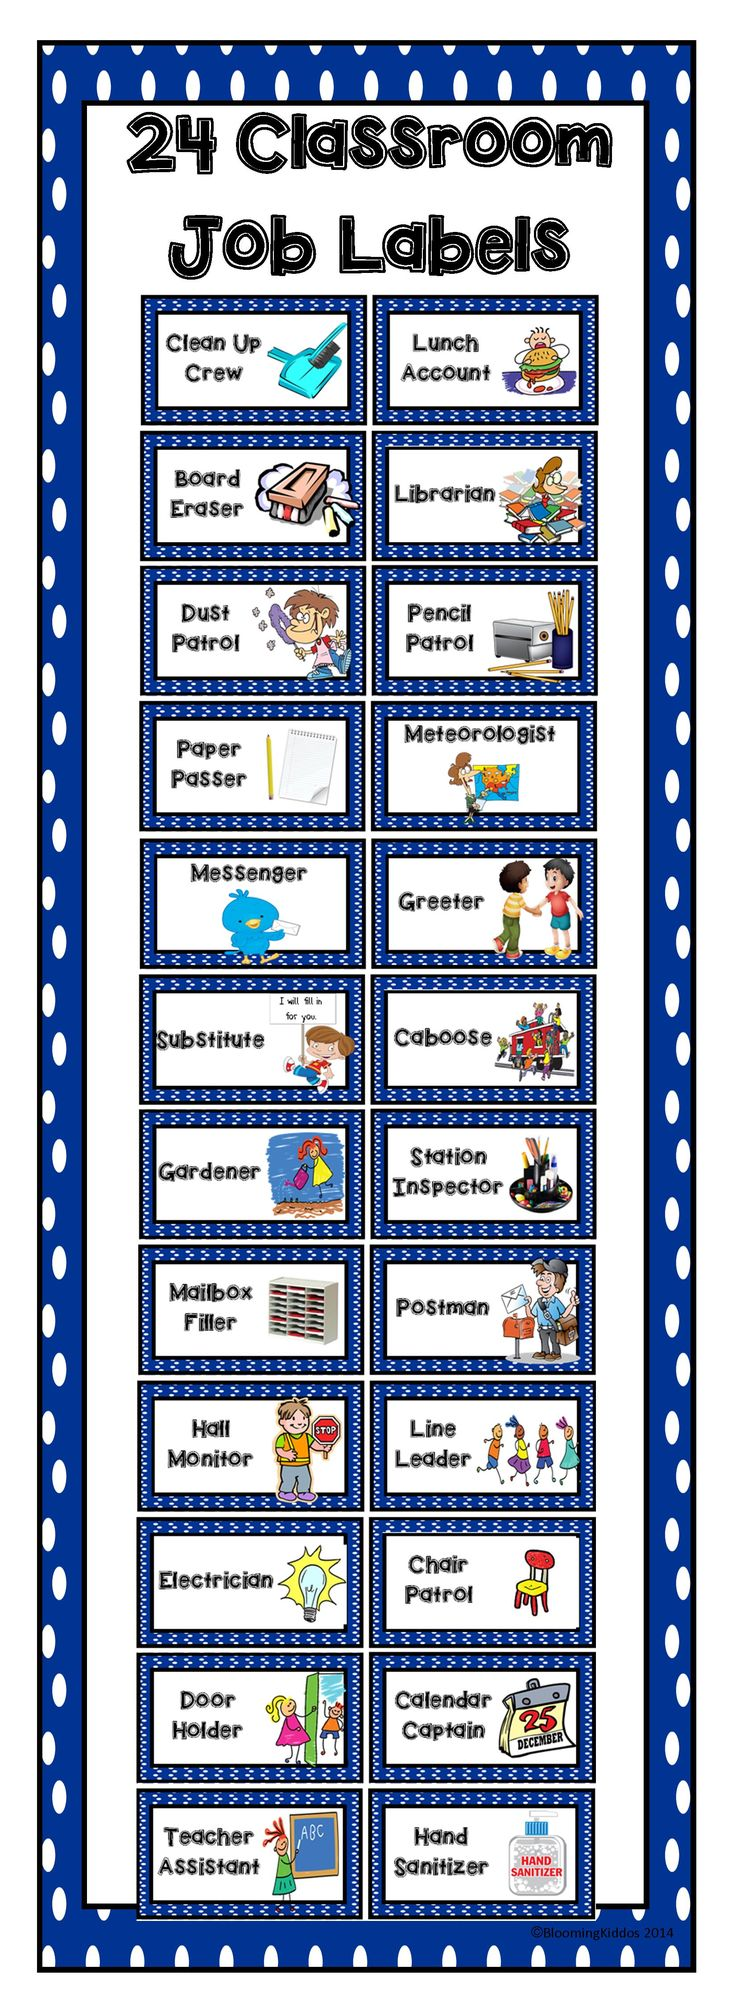 24 classroom job labels to help teach your students leadership and responsibility in the classroom.